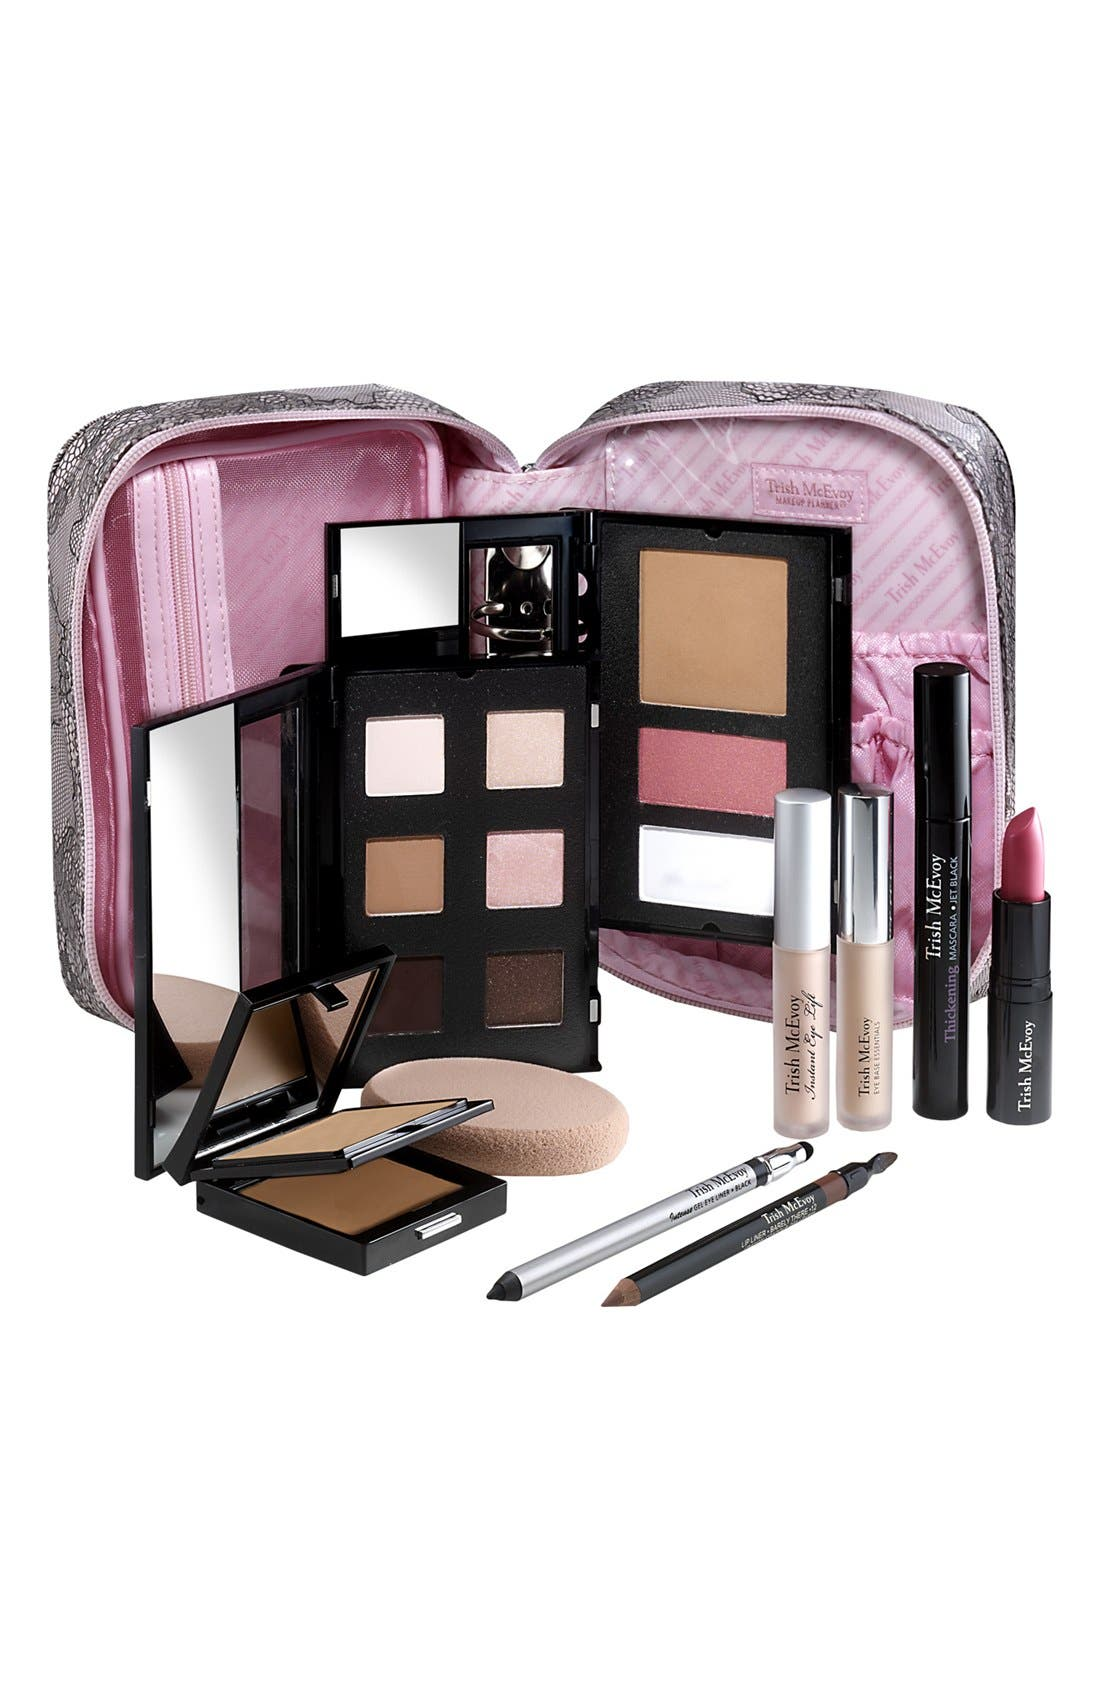 Main Image - Trish McEvoy Power of Makeup® Planner Collection Pure Romance ($565 Value)